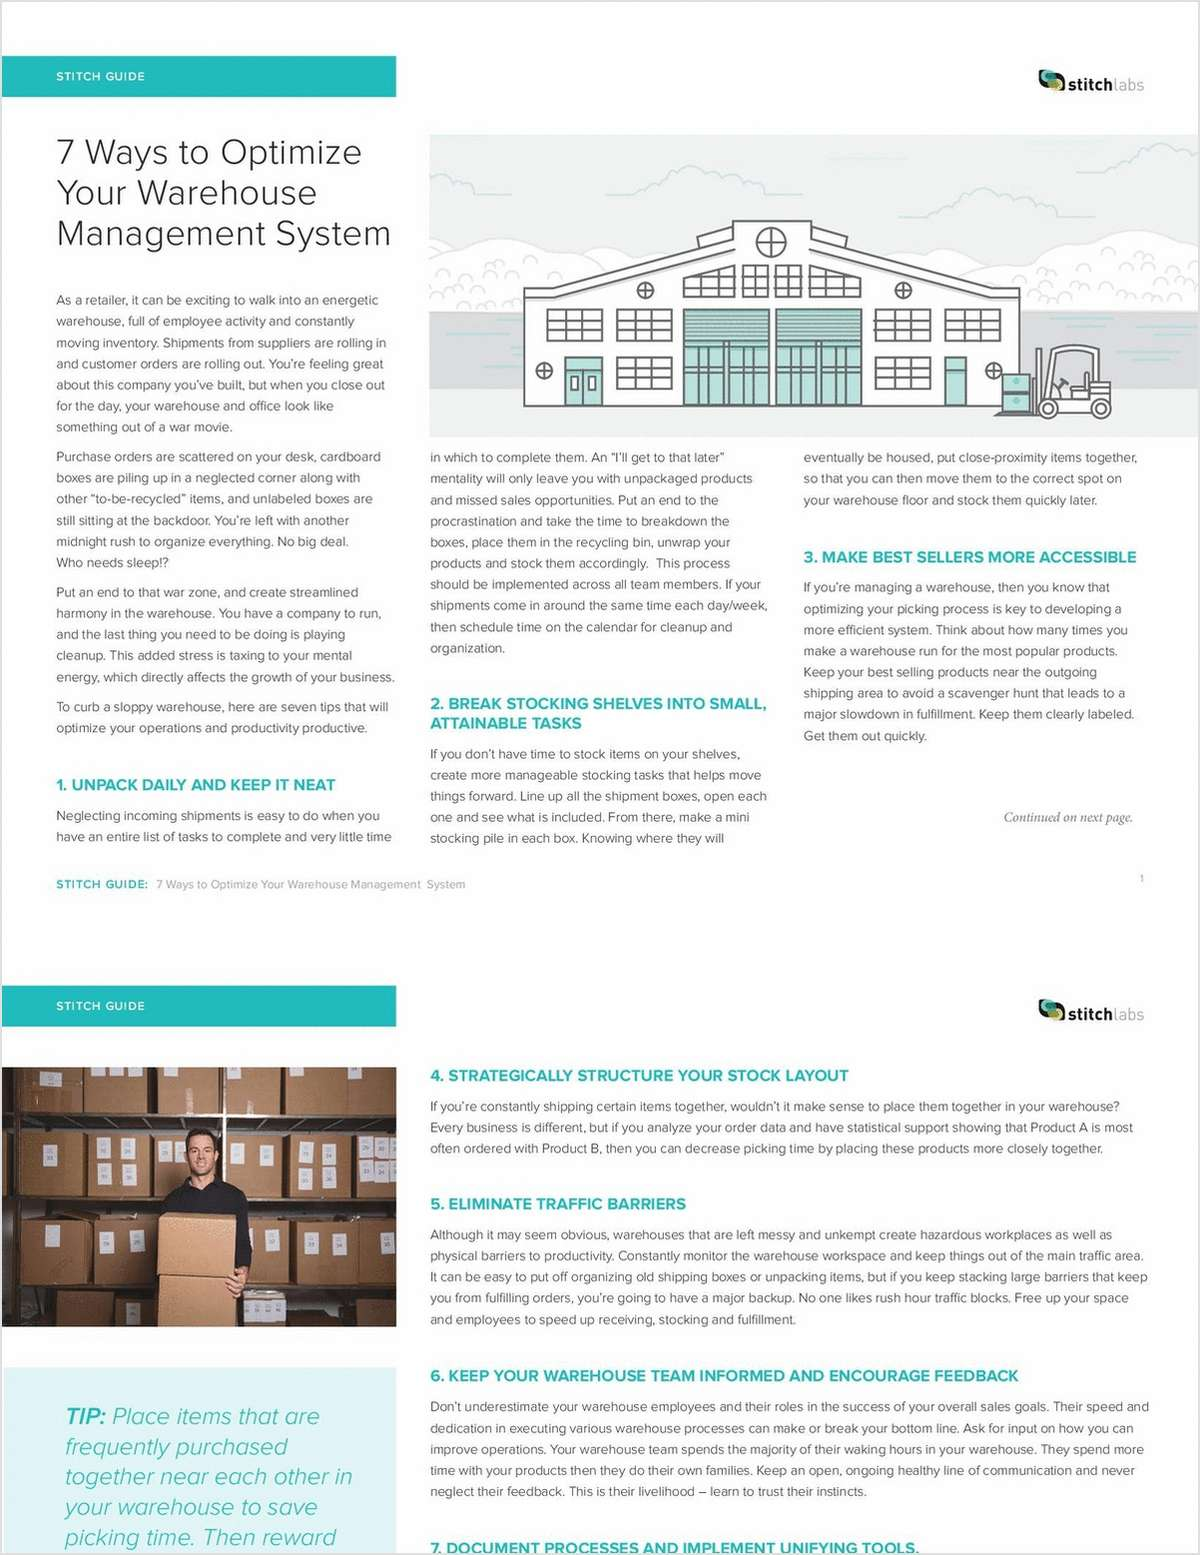 7 Ways to Optimize Your Warehouse Management